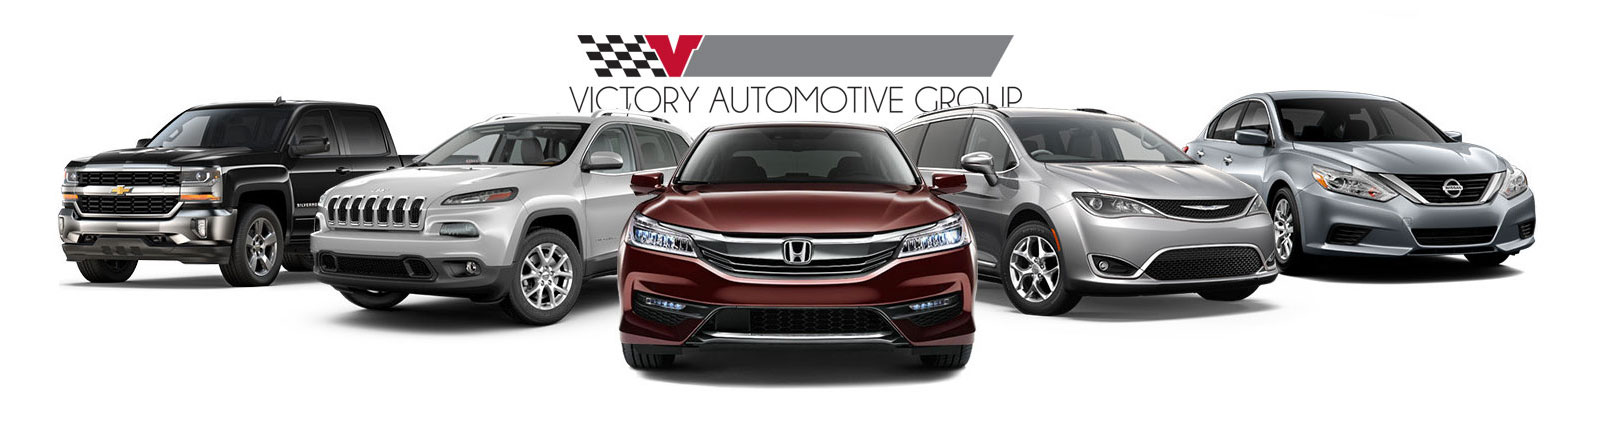 Victory Automotive Group Cars